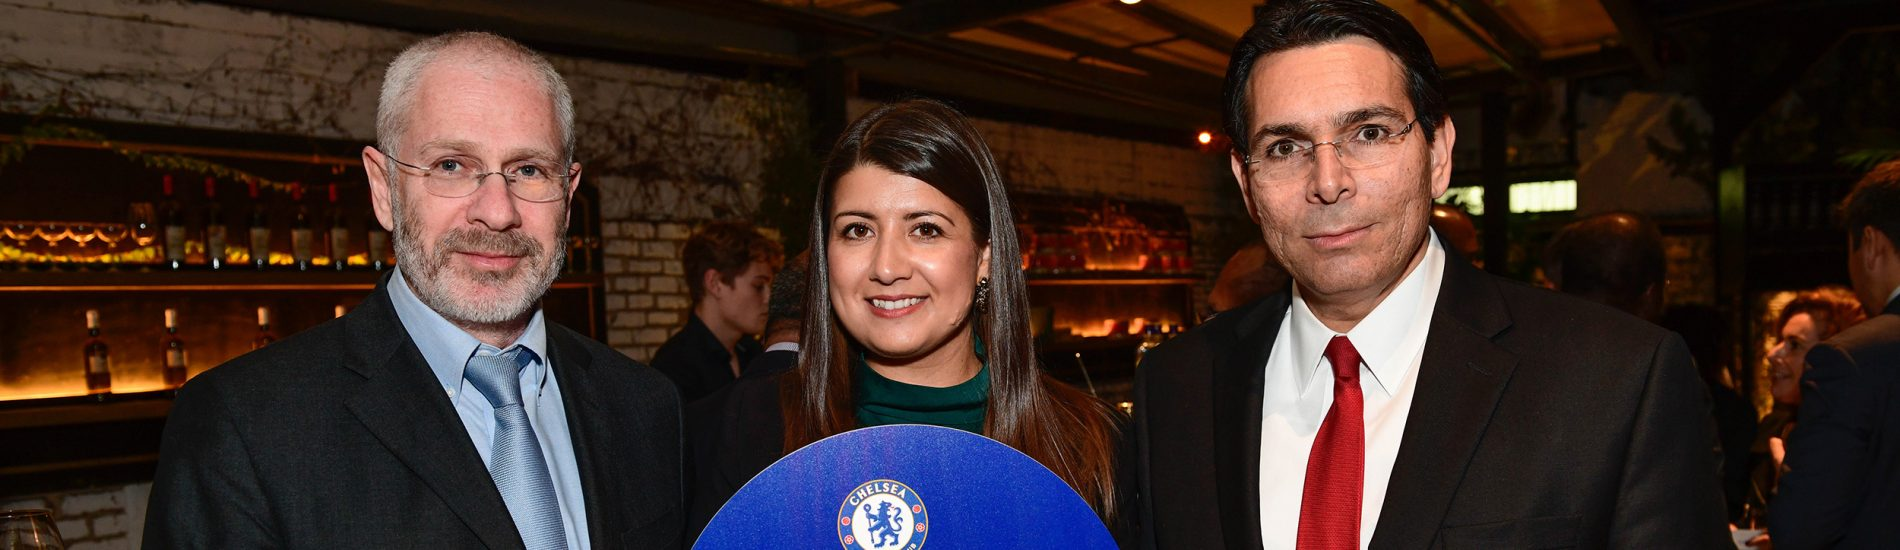 Chelsea Event Showcases 'Say No To Antisemitism' Campaign to UN Ambassadors